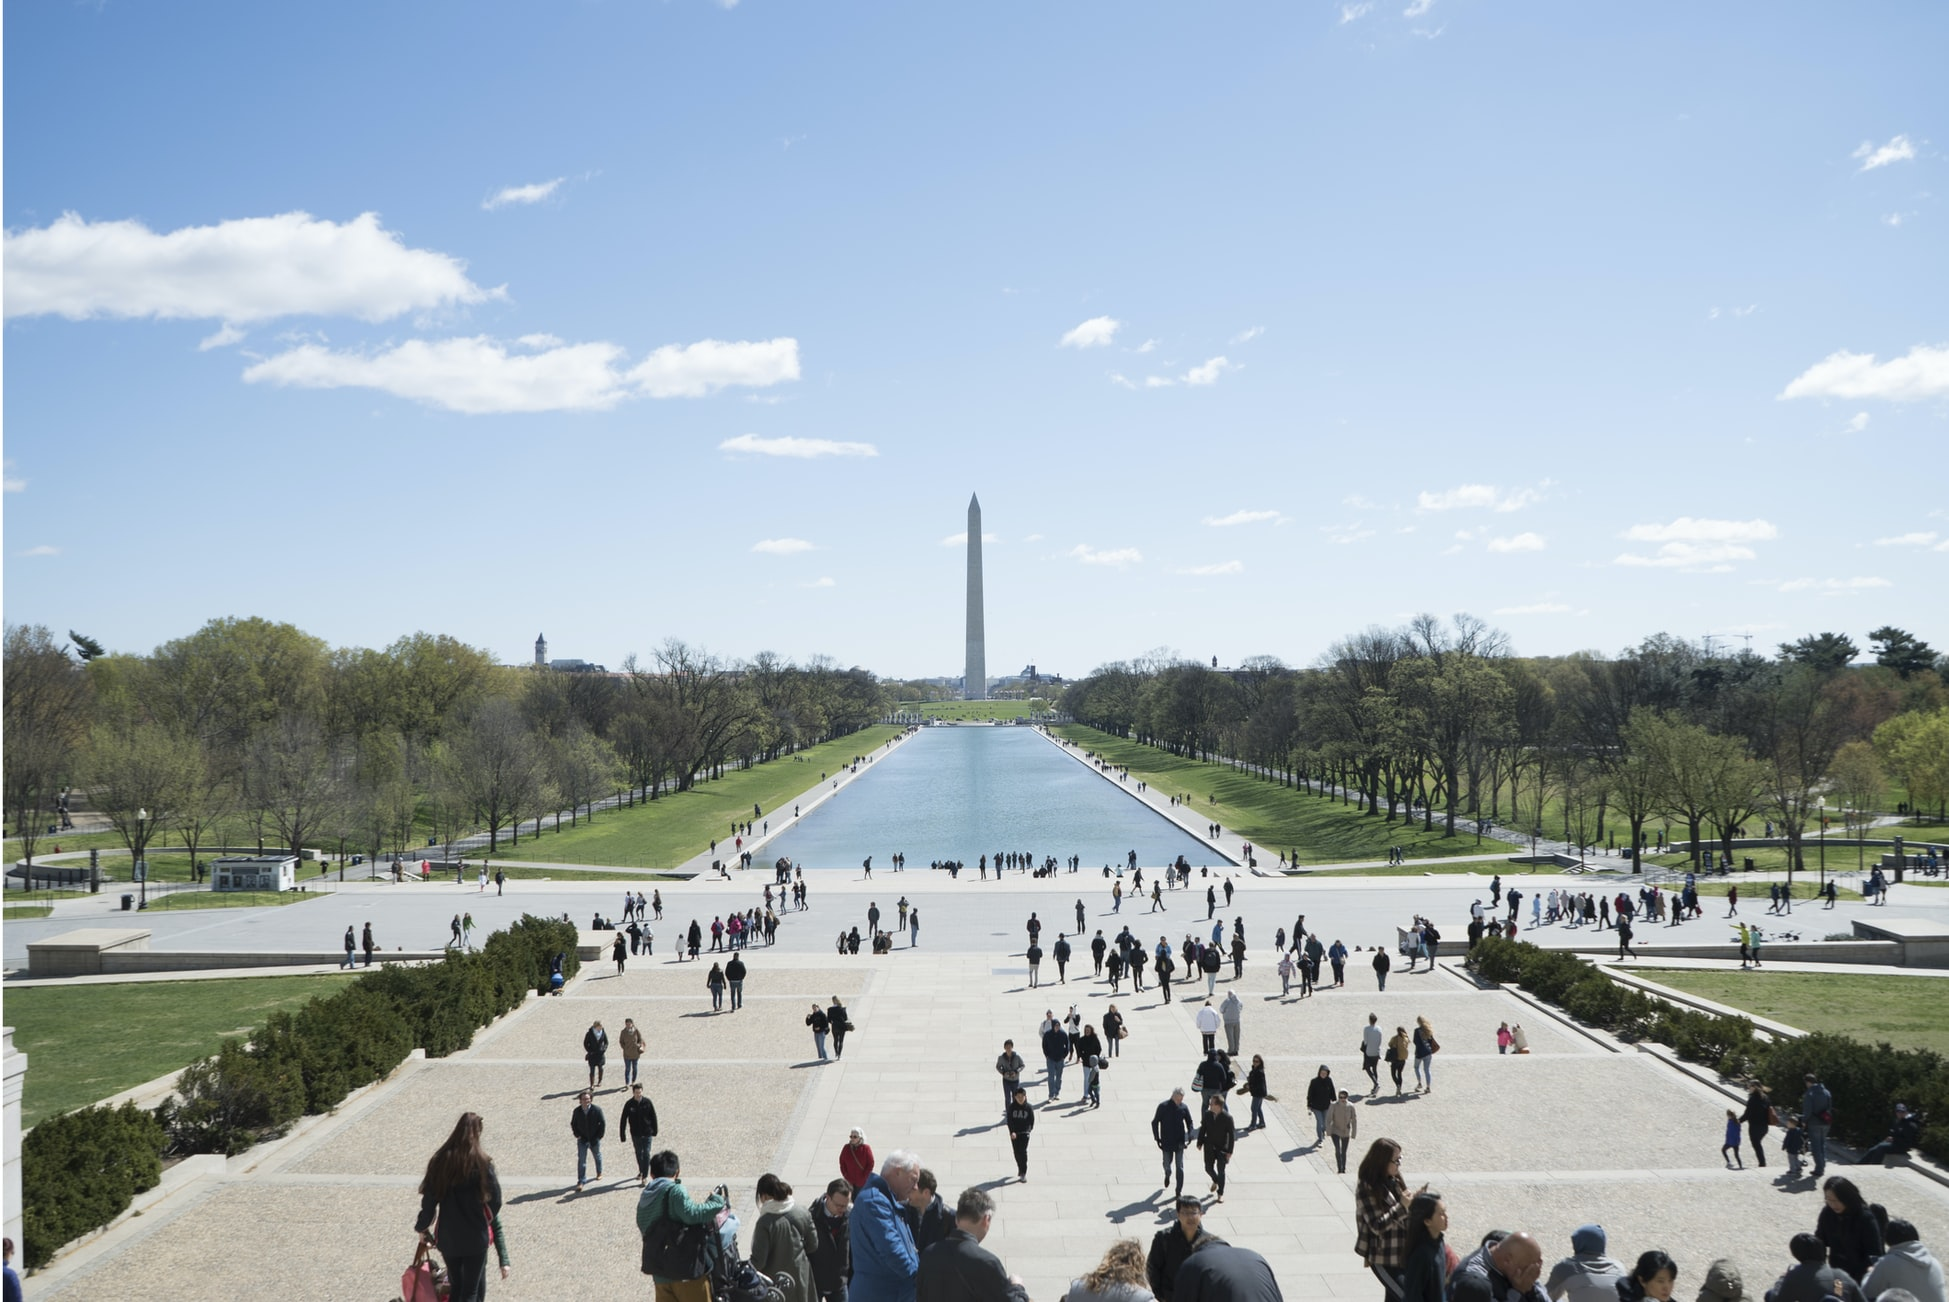 the National Mall in Washington D.C.